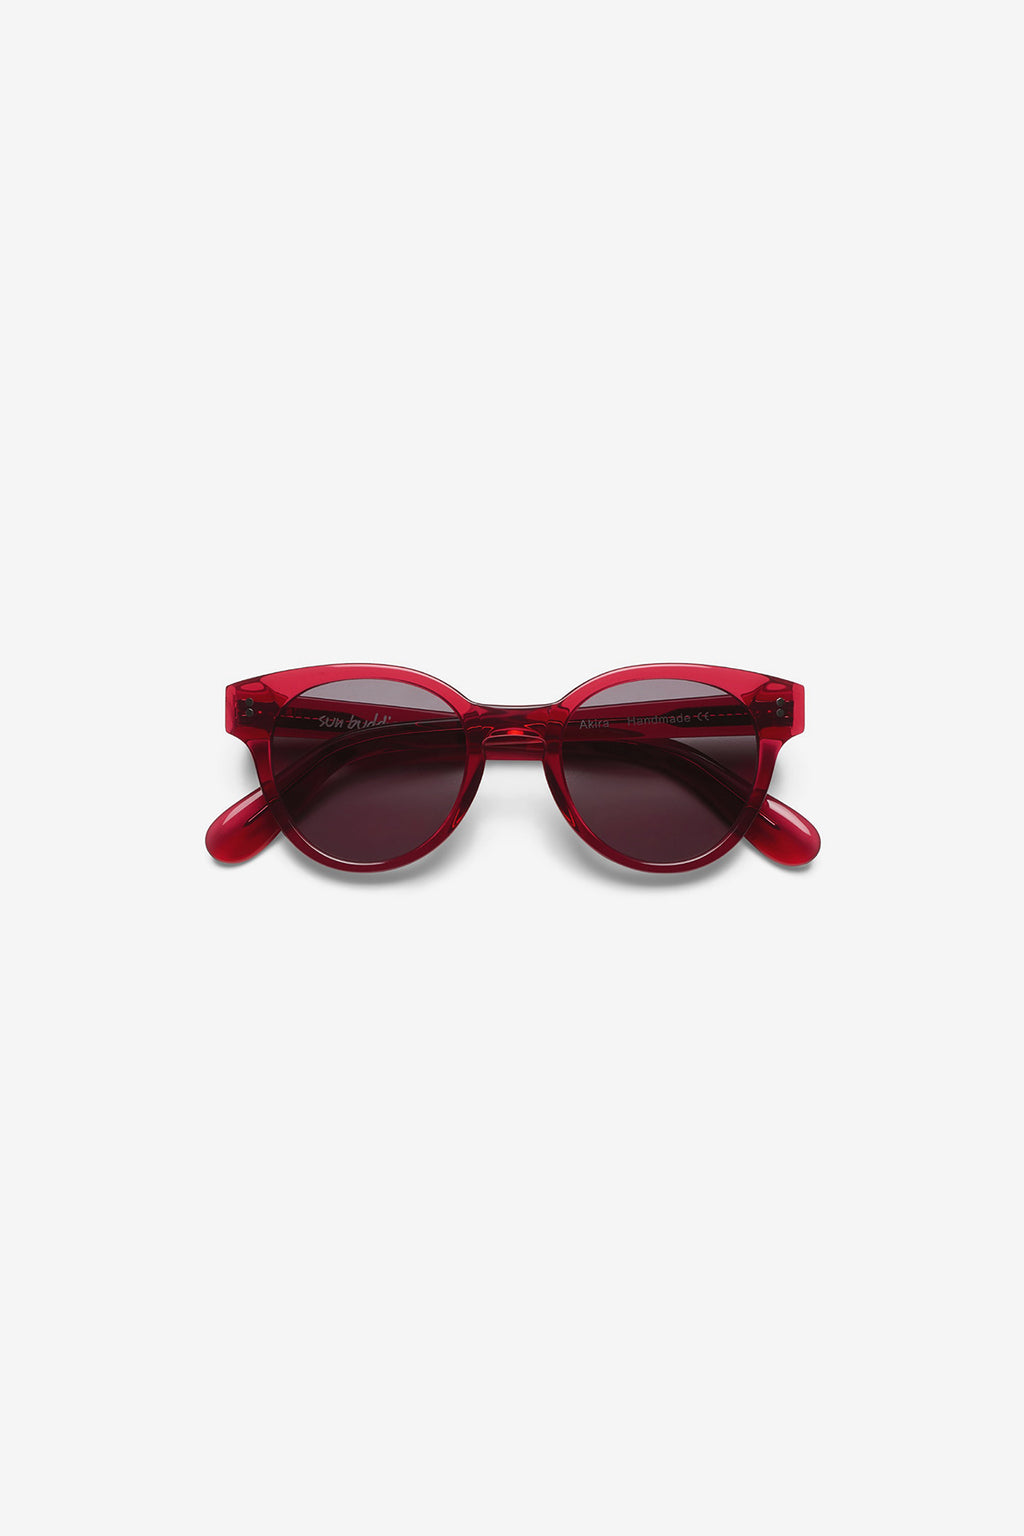 Sun Buddies Akira Cherry Hill Sunglasses